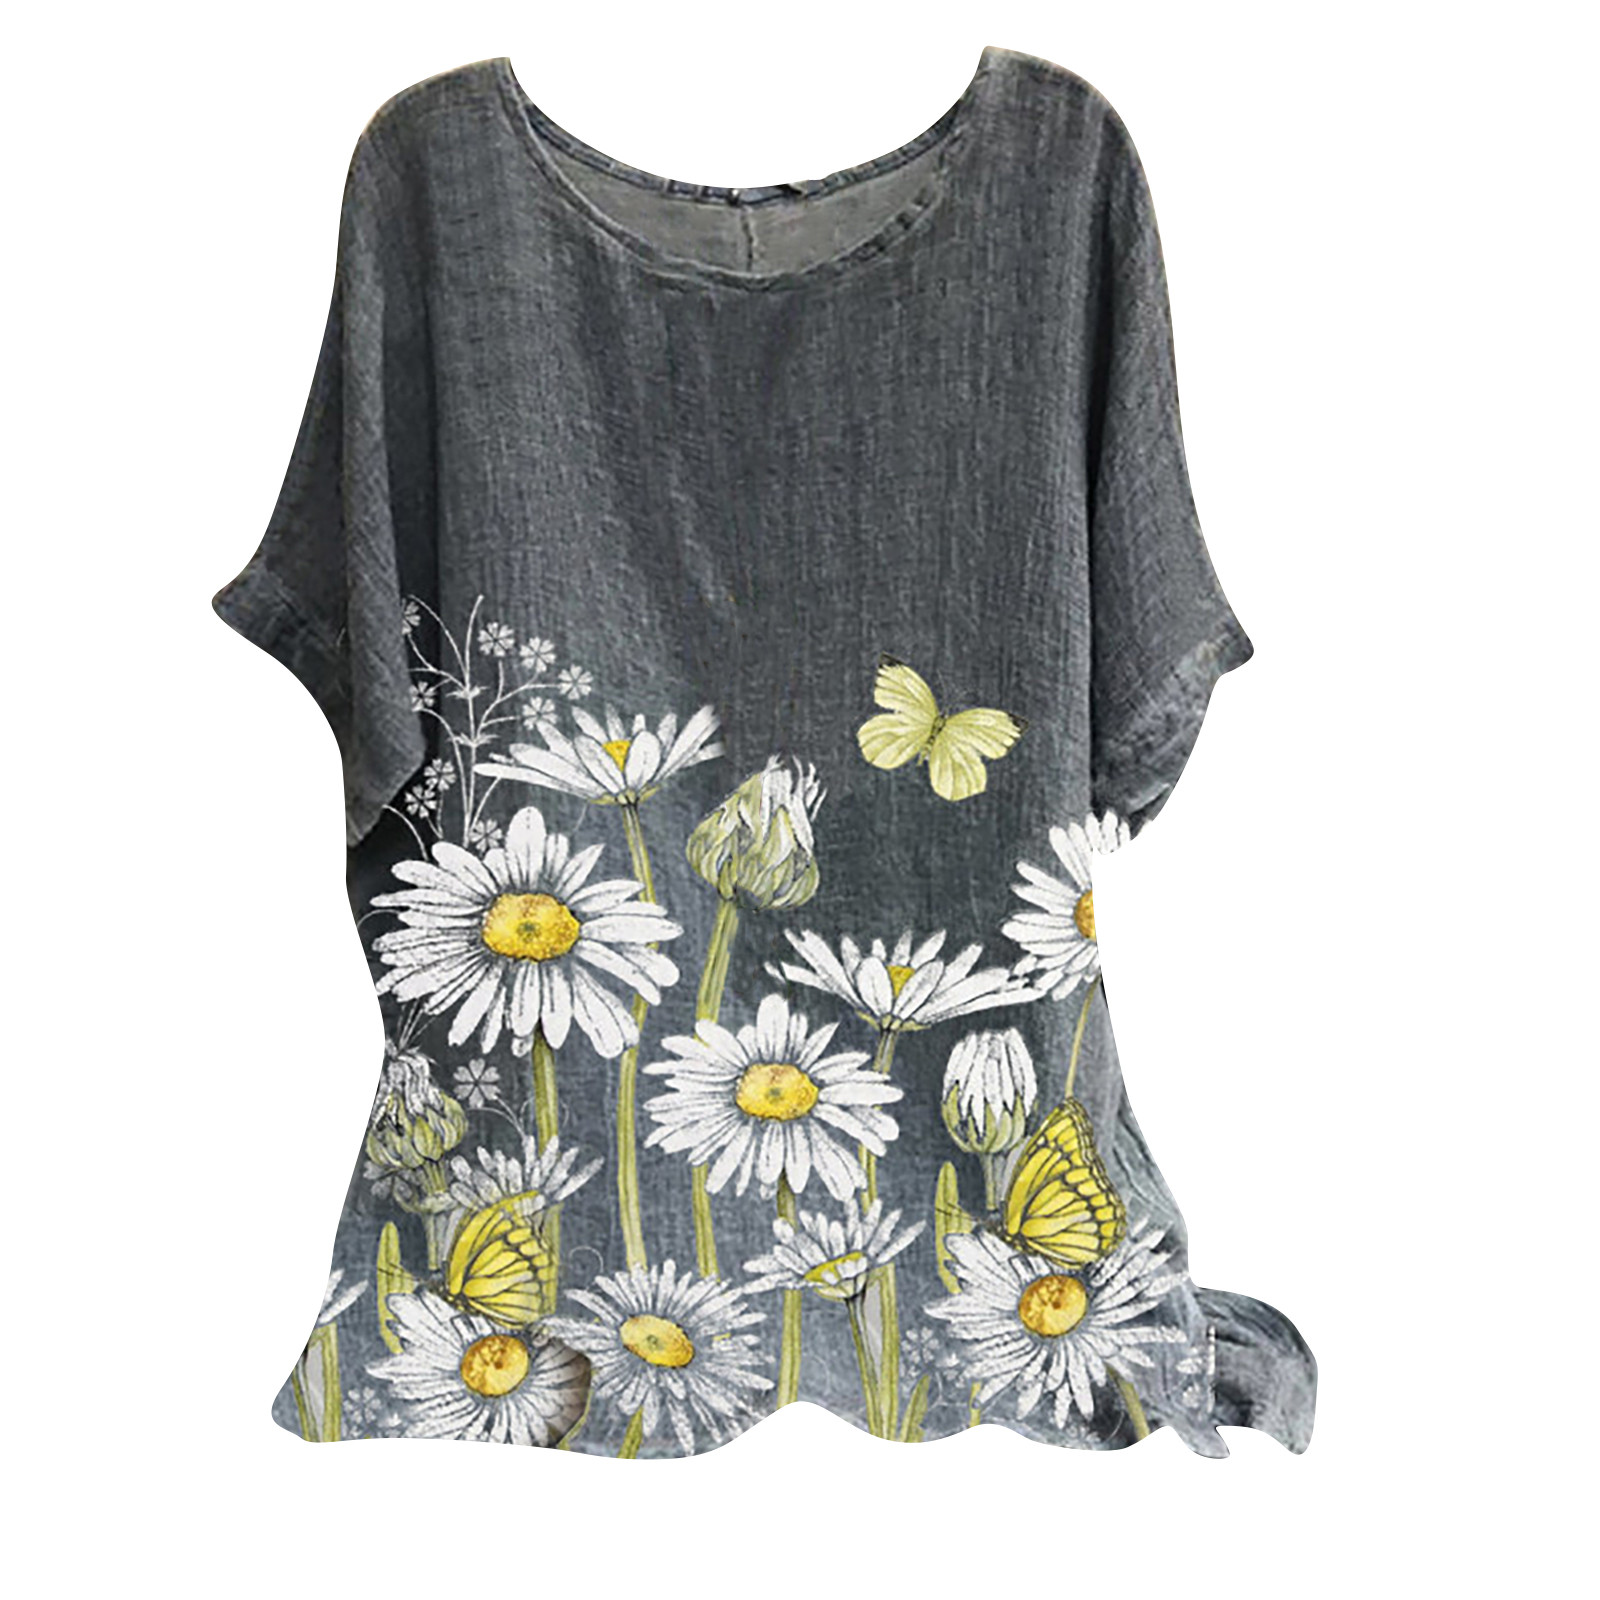 3xl Plus Size Summer Clothes For Female Tops 2021 New Fashion Woman Vintage Short Sleeve Floral Print Top Shirts Blouse Рубашка Women Women's Blouses Women's Clothings